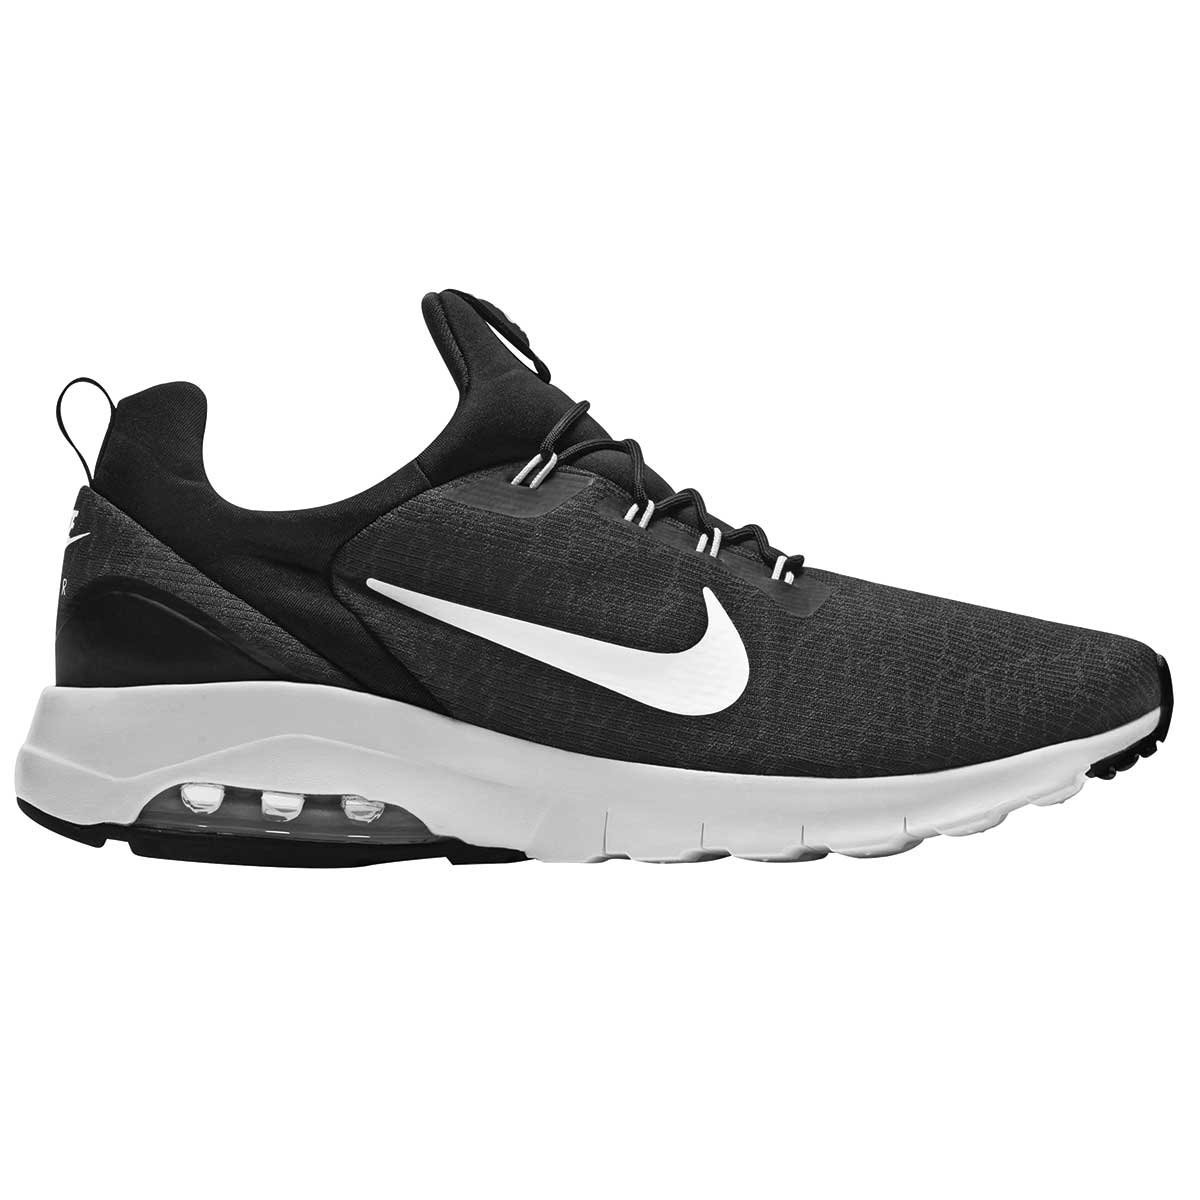 a8dc73056be tenis nike air max motion racer negro caballero 2017. Cargando zoom.